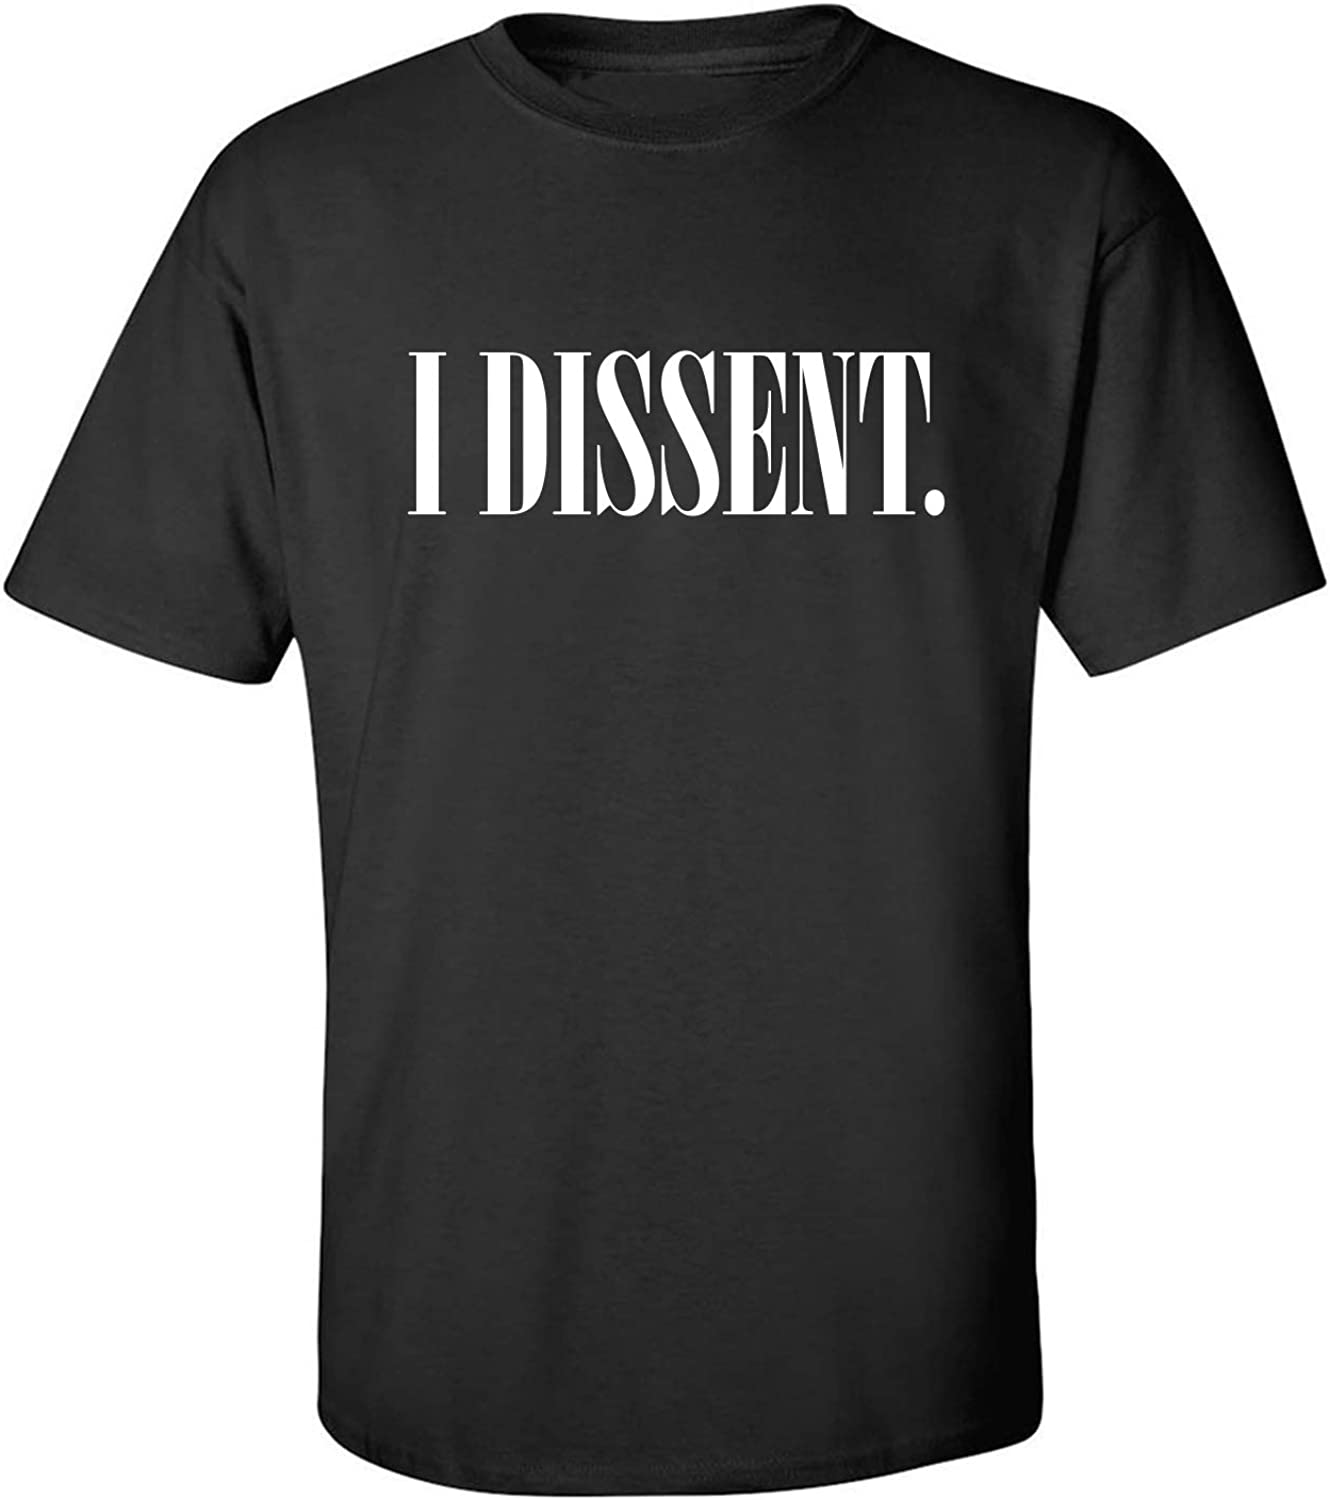 I Dissent Adult T-Shirt in Black - XXXXX-Large